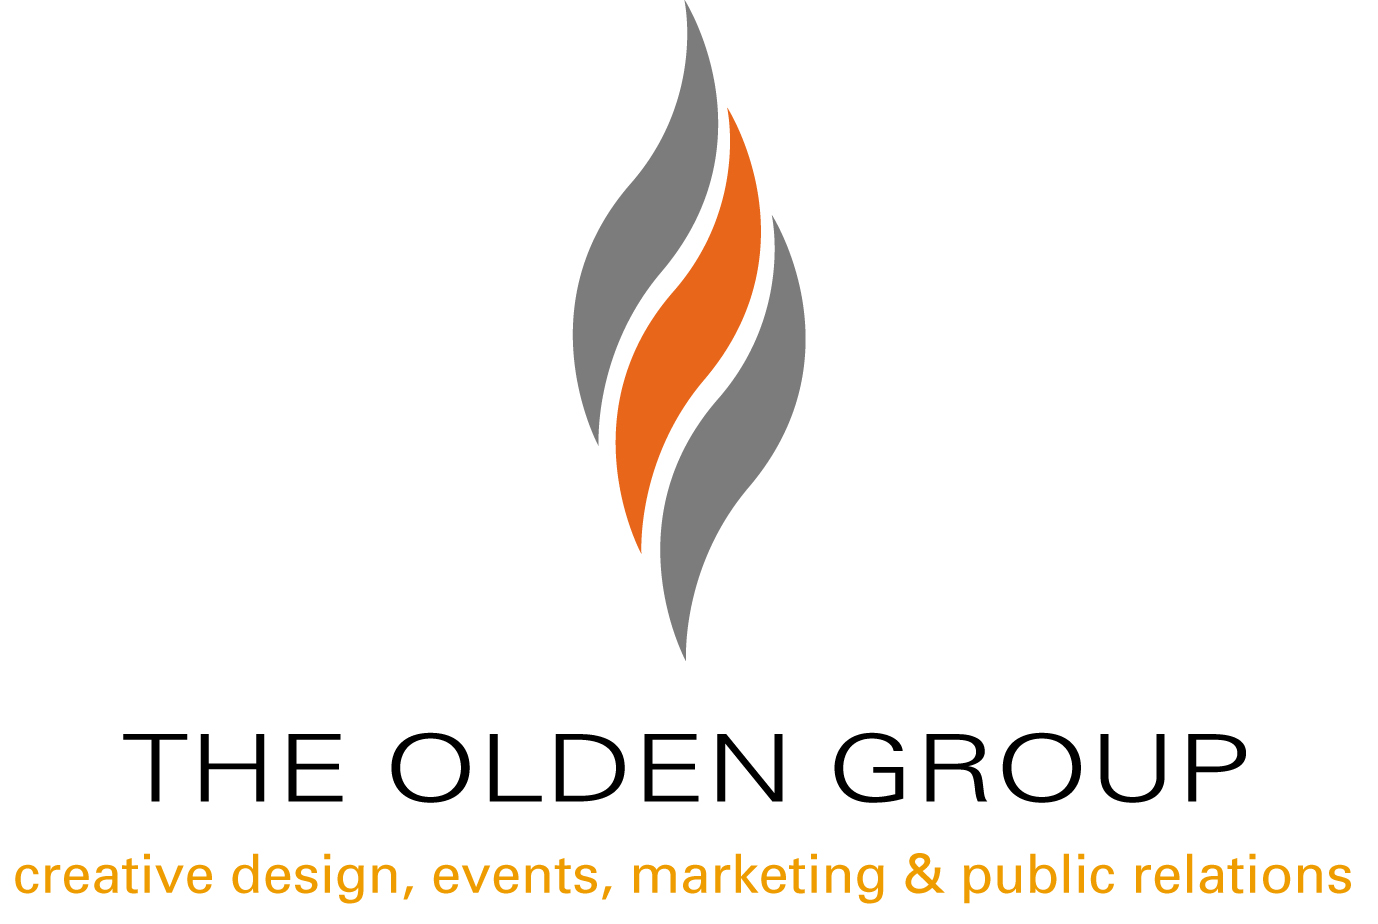 The Olden Group